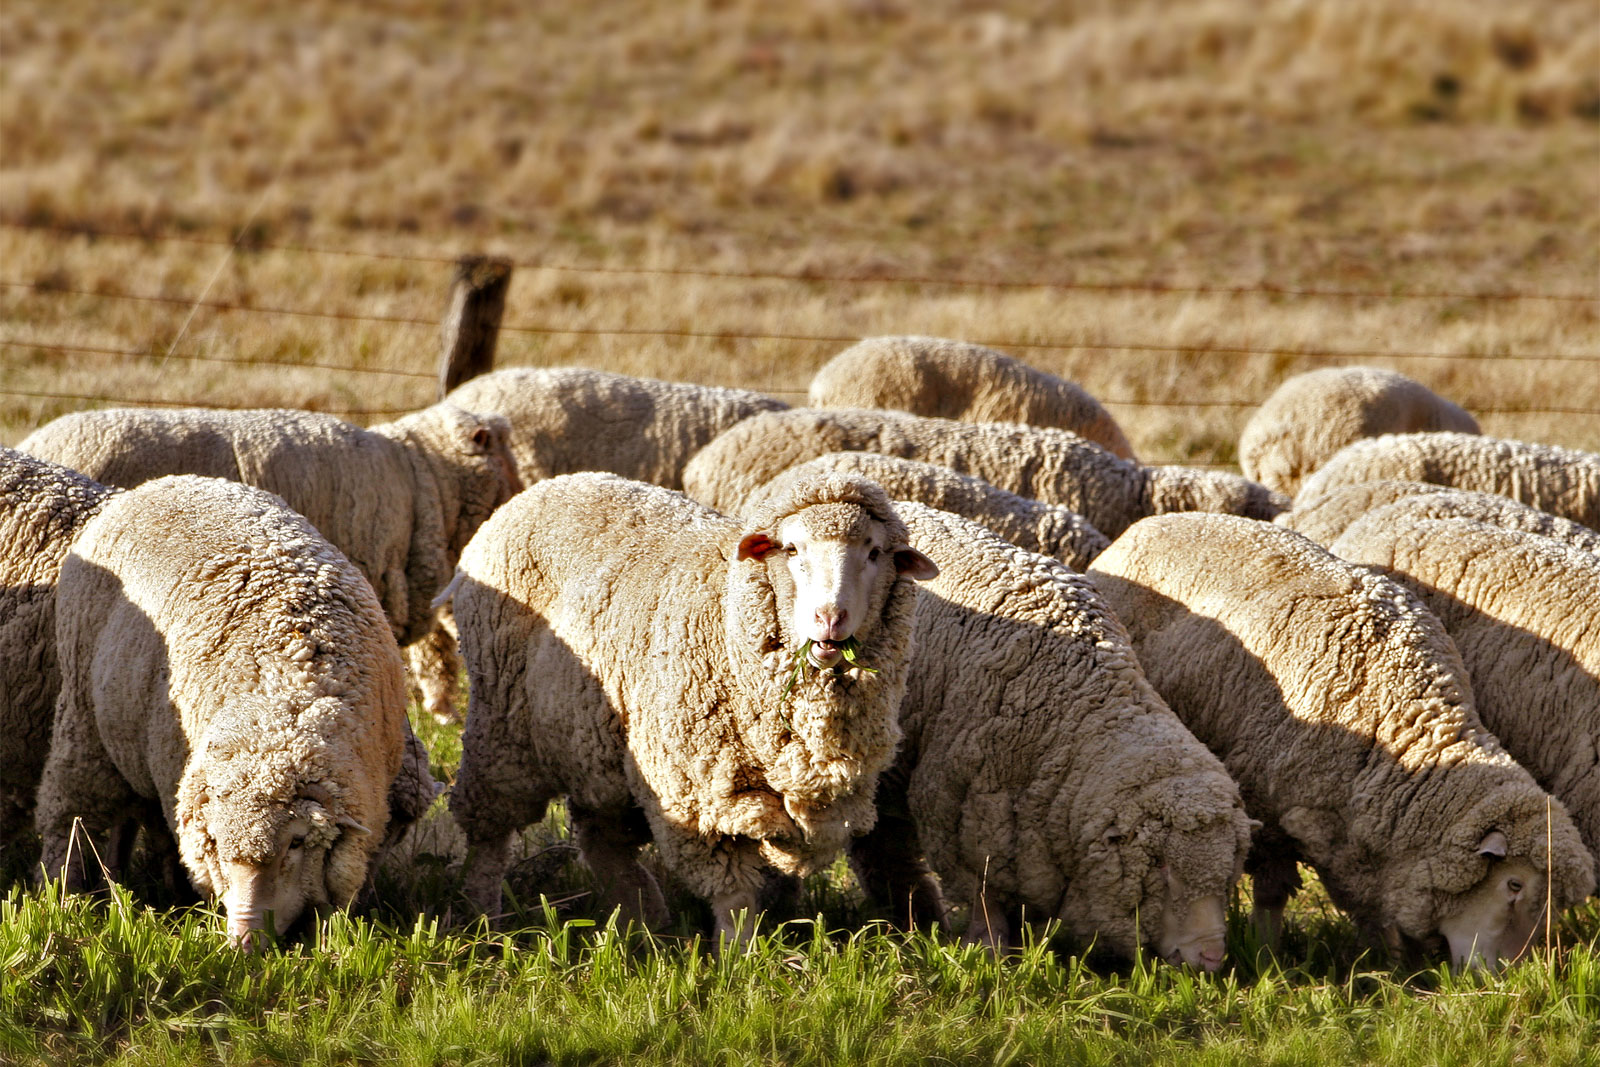 Sheep farming wikipedia for Australian cuisine facts